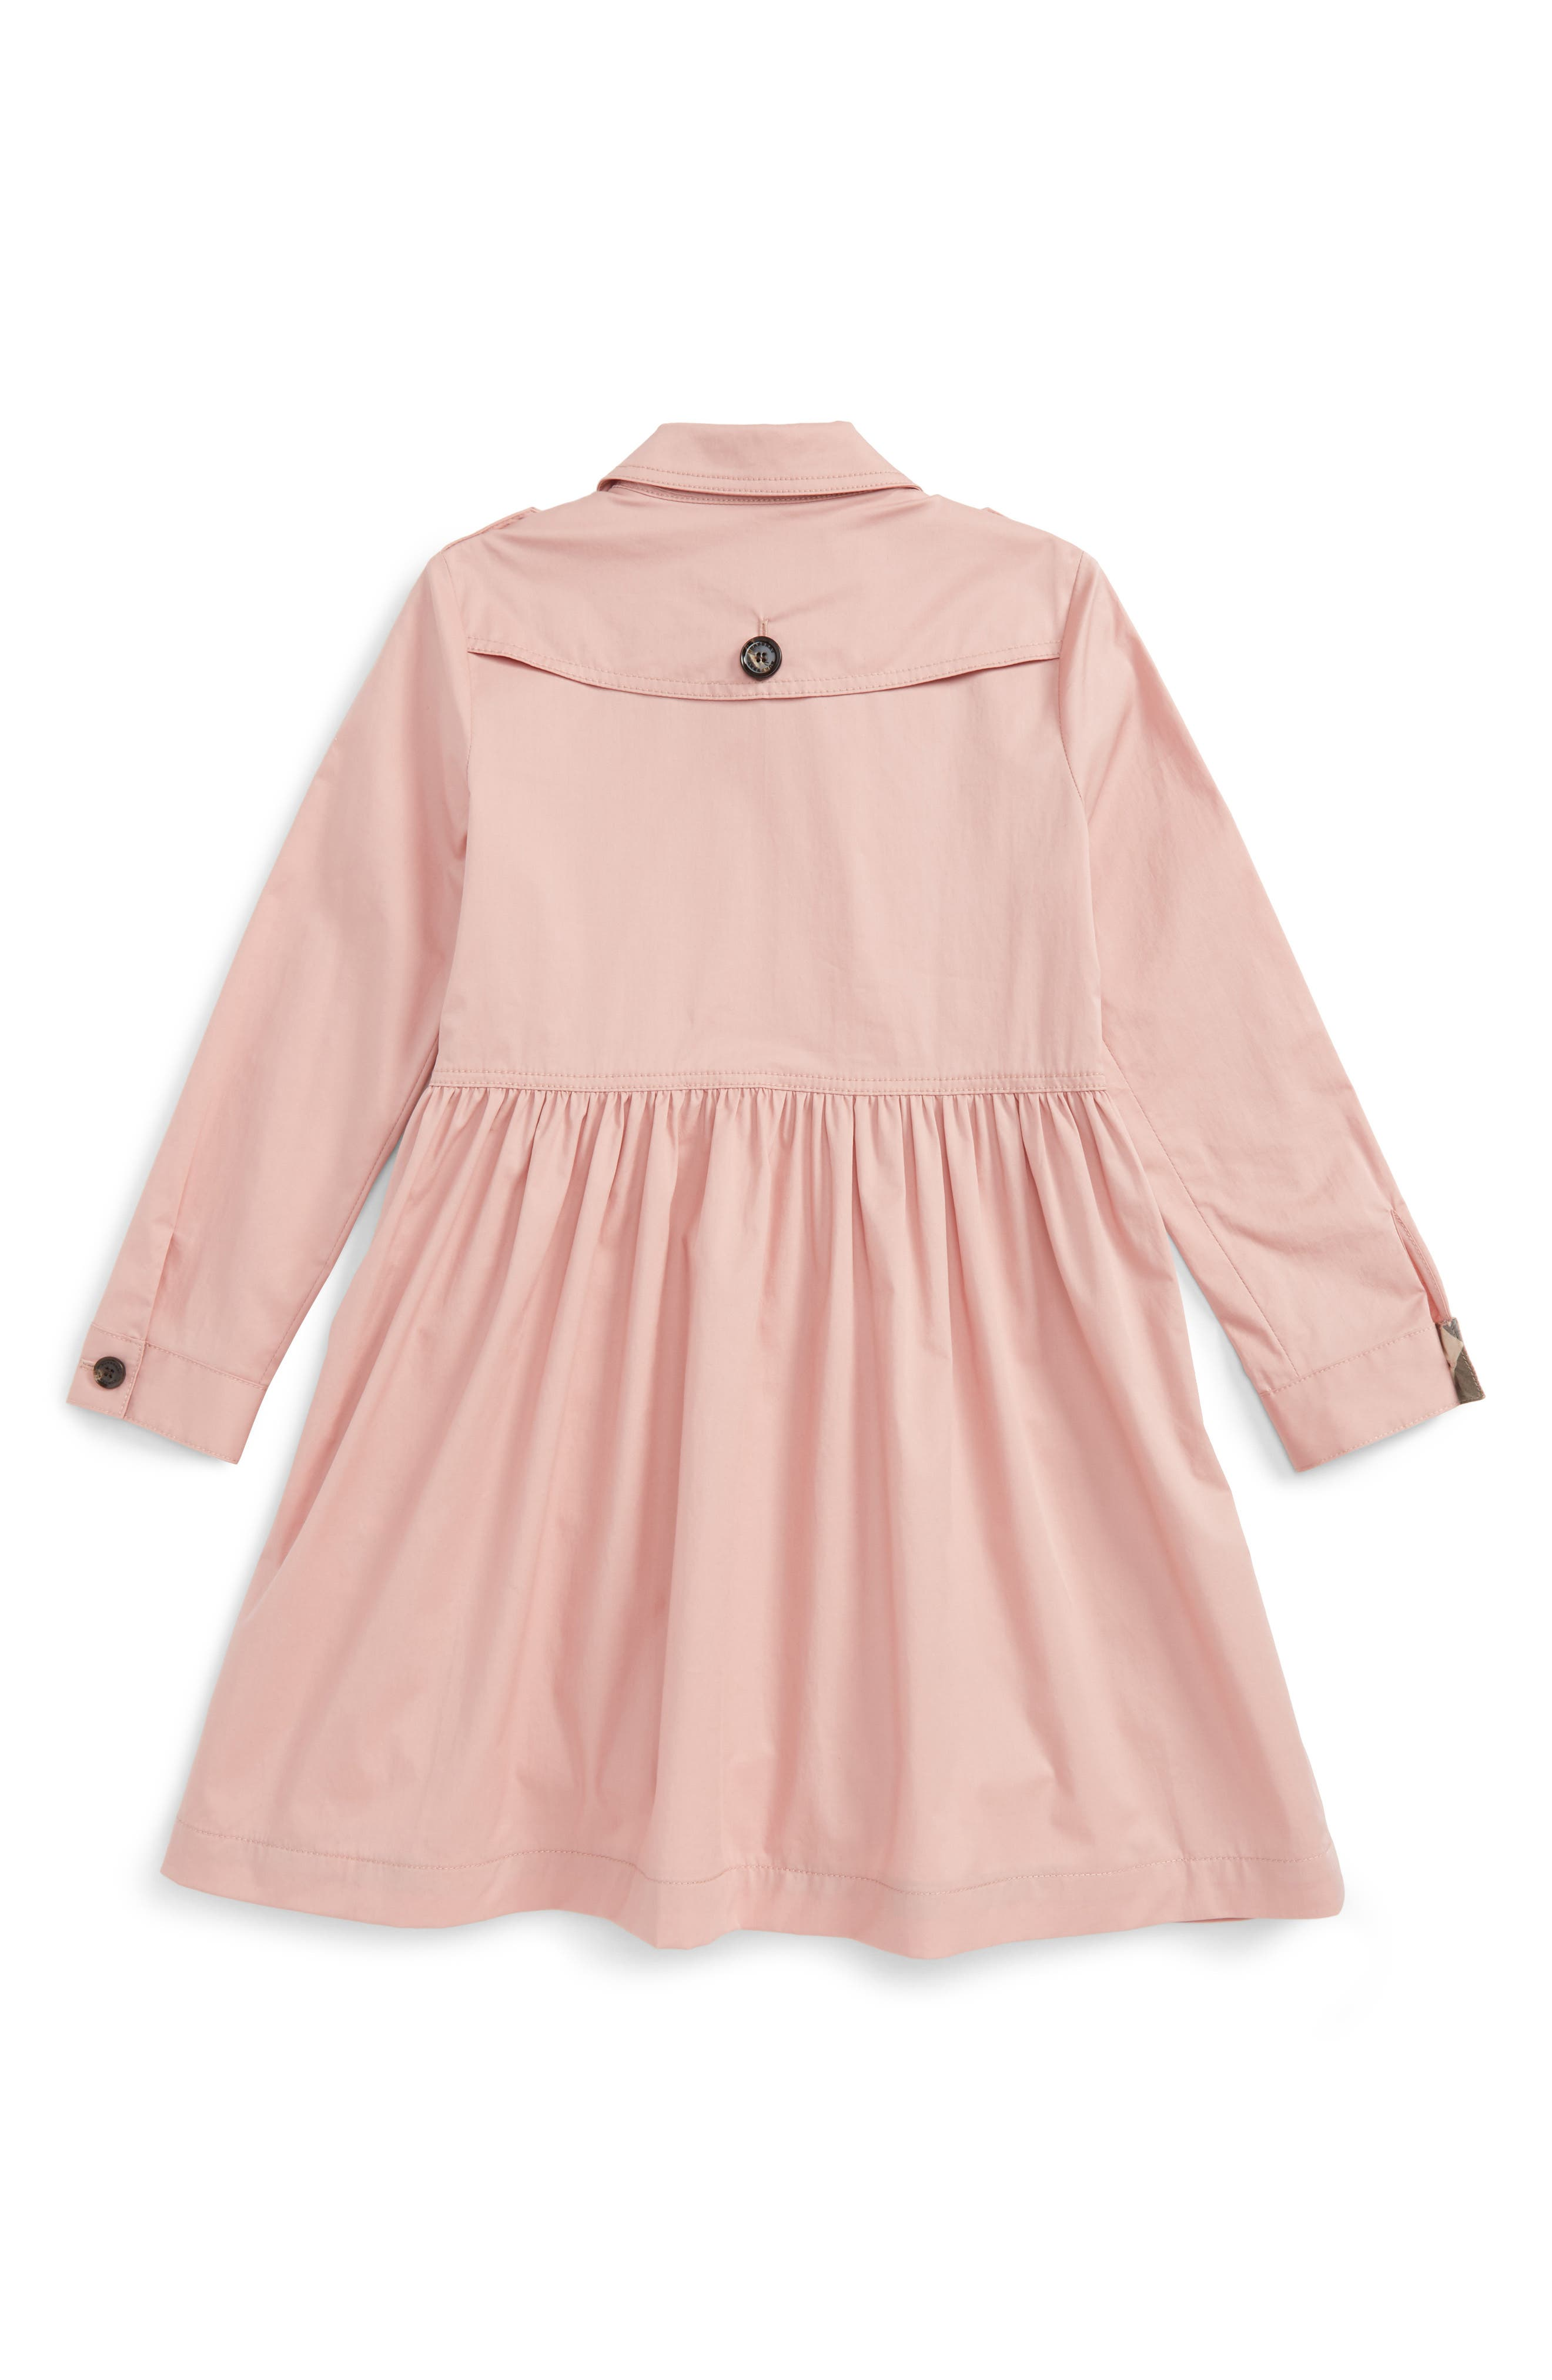 Lillyana Trench Dress,                             Alternate thumbnail 2, color,                             680